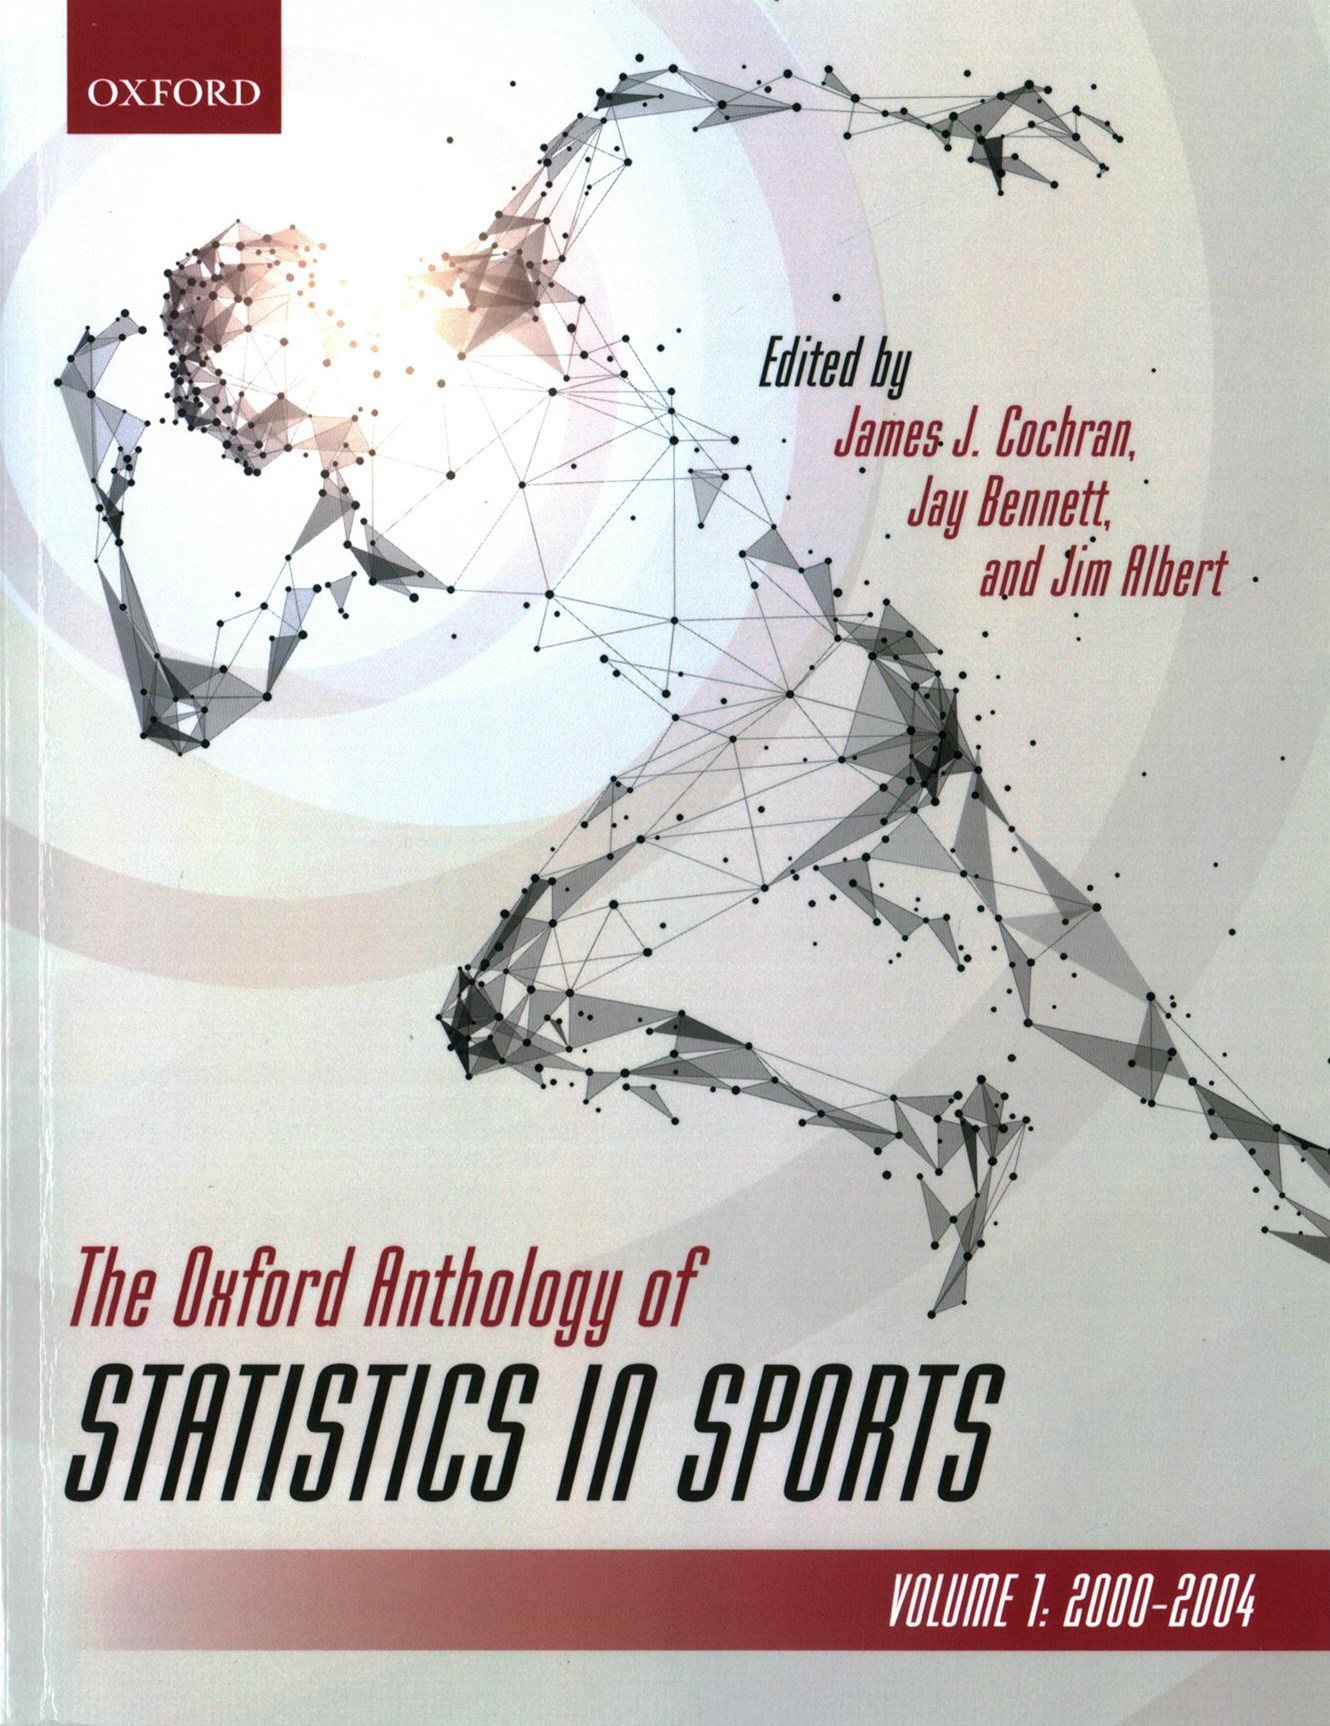 The Oxford Anthology of Statistics in Sports, Volume 1